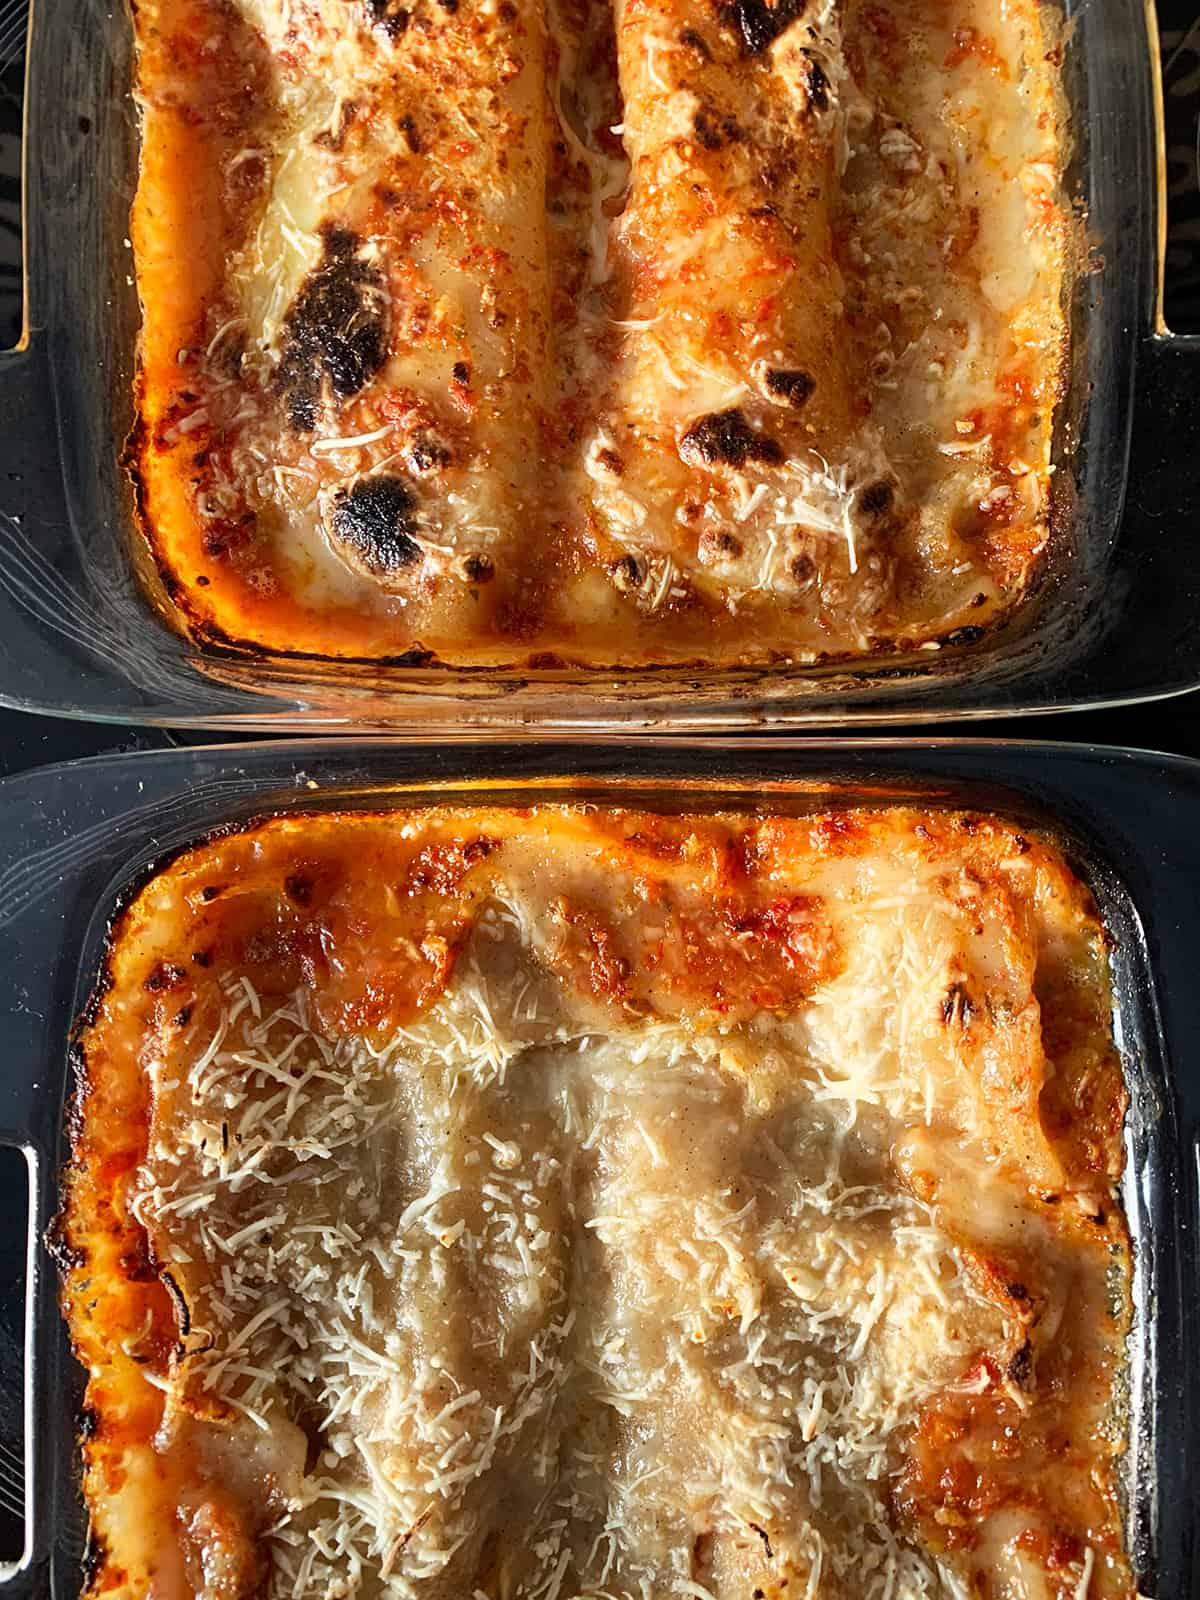 Baked vegan lasagna with mushroom and gluten free served in two glass baking trays